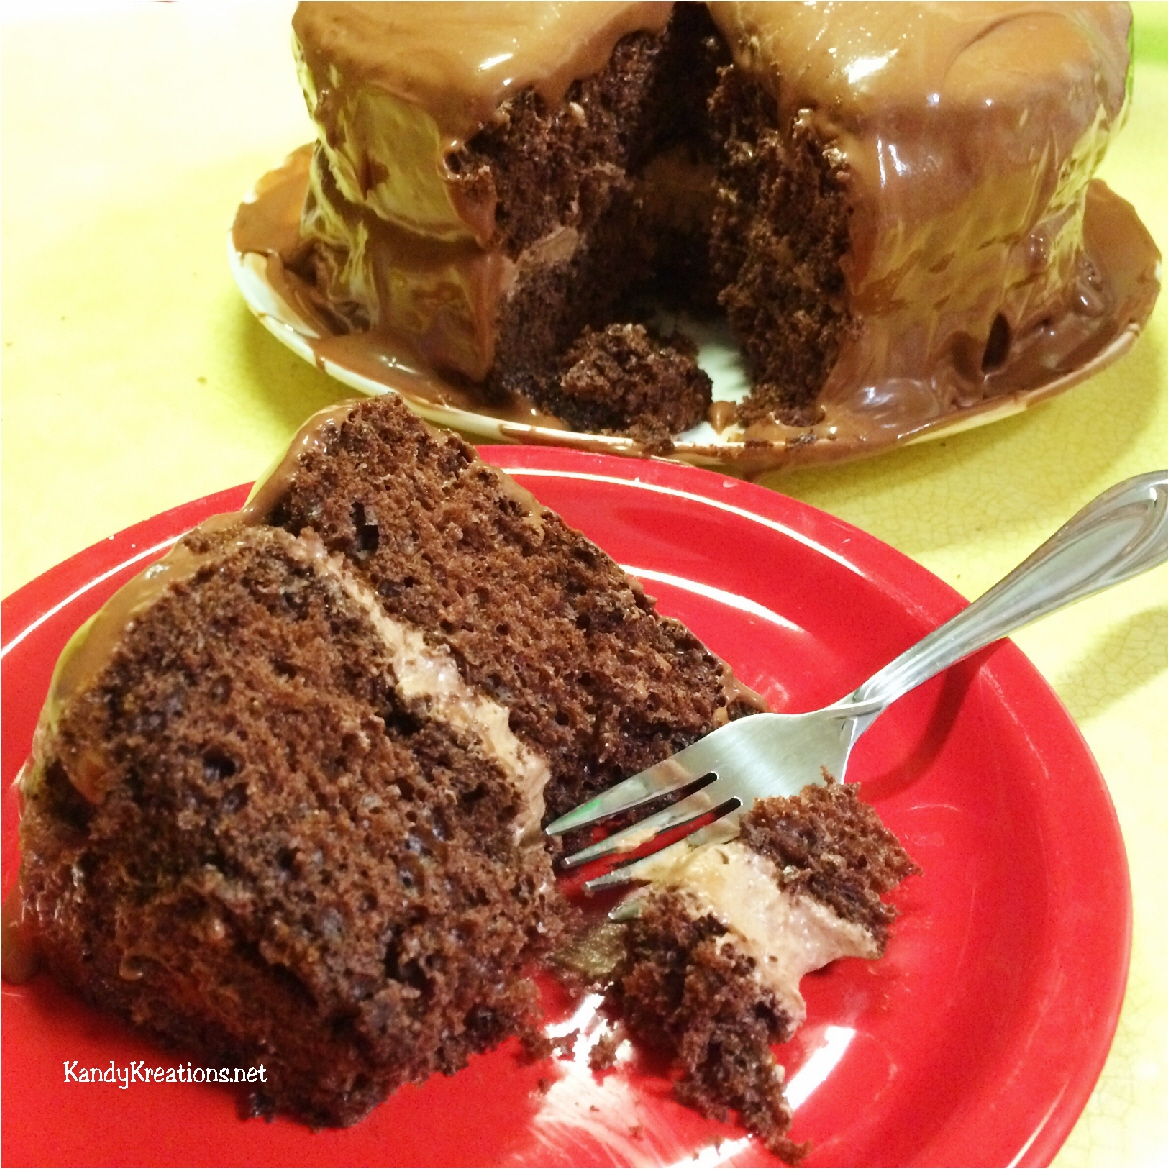 the best chocolate cake with cream filling ever. Using boxed cake